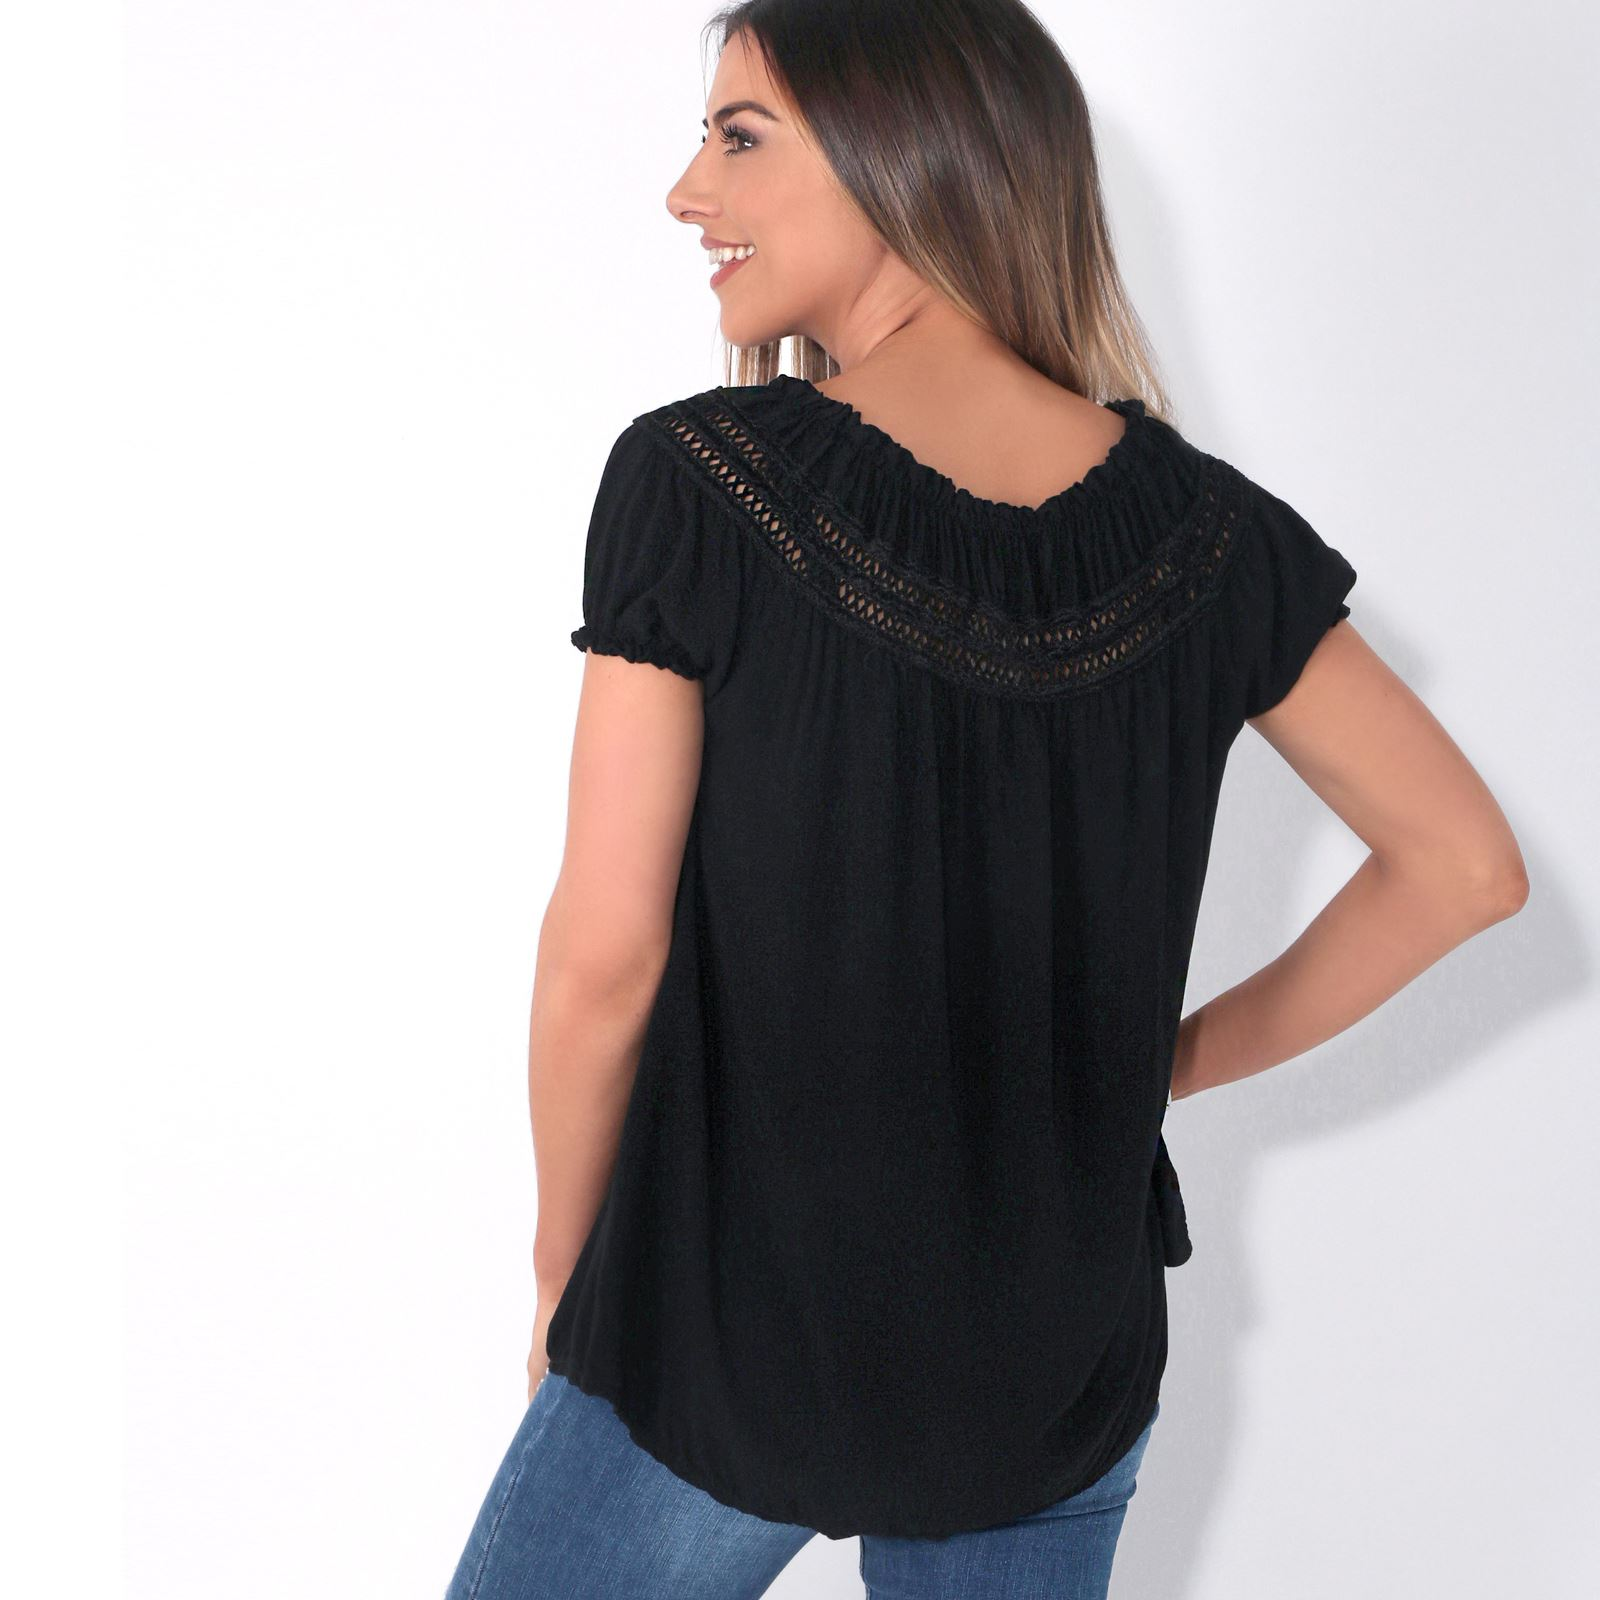 Womens-Off-Shoulder-Blouse-Gypsy-Boho-Cotton-T-Shirt-Top-Tunic-Summer-Loose-Fit thumbnail 3